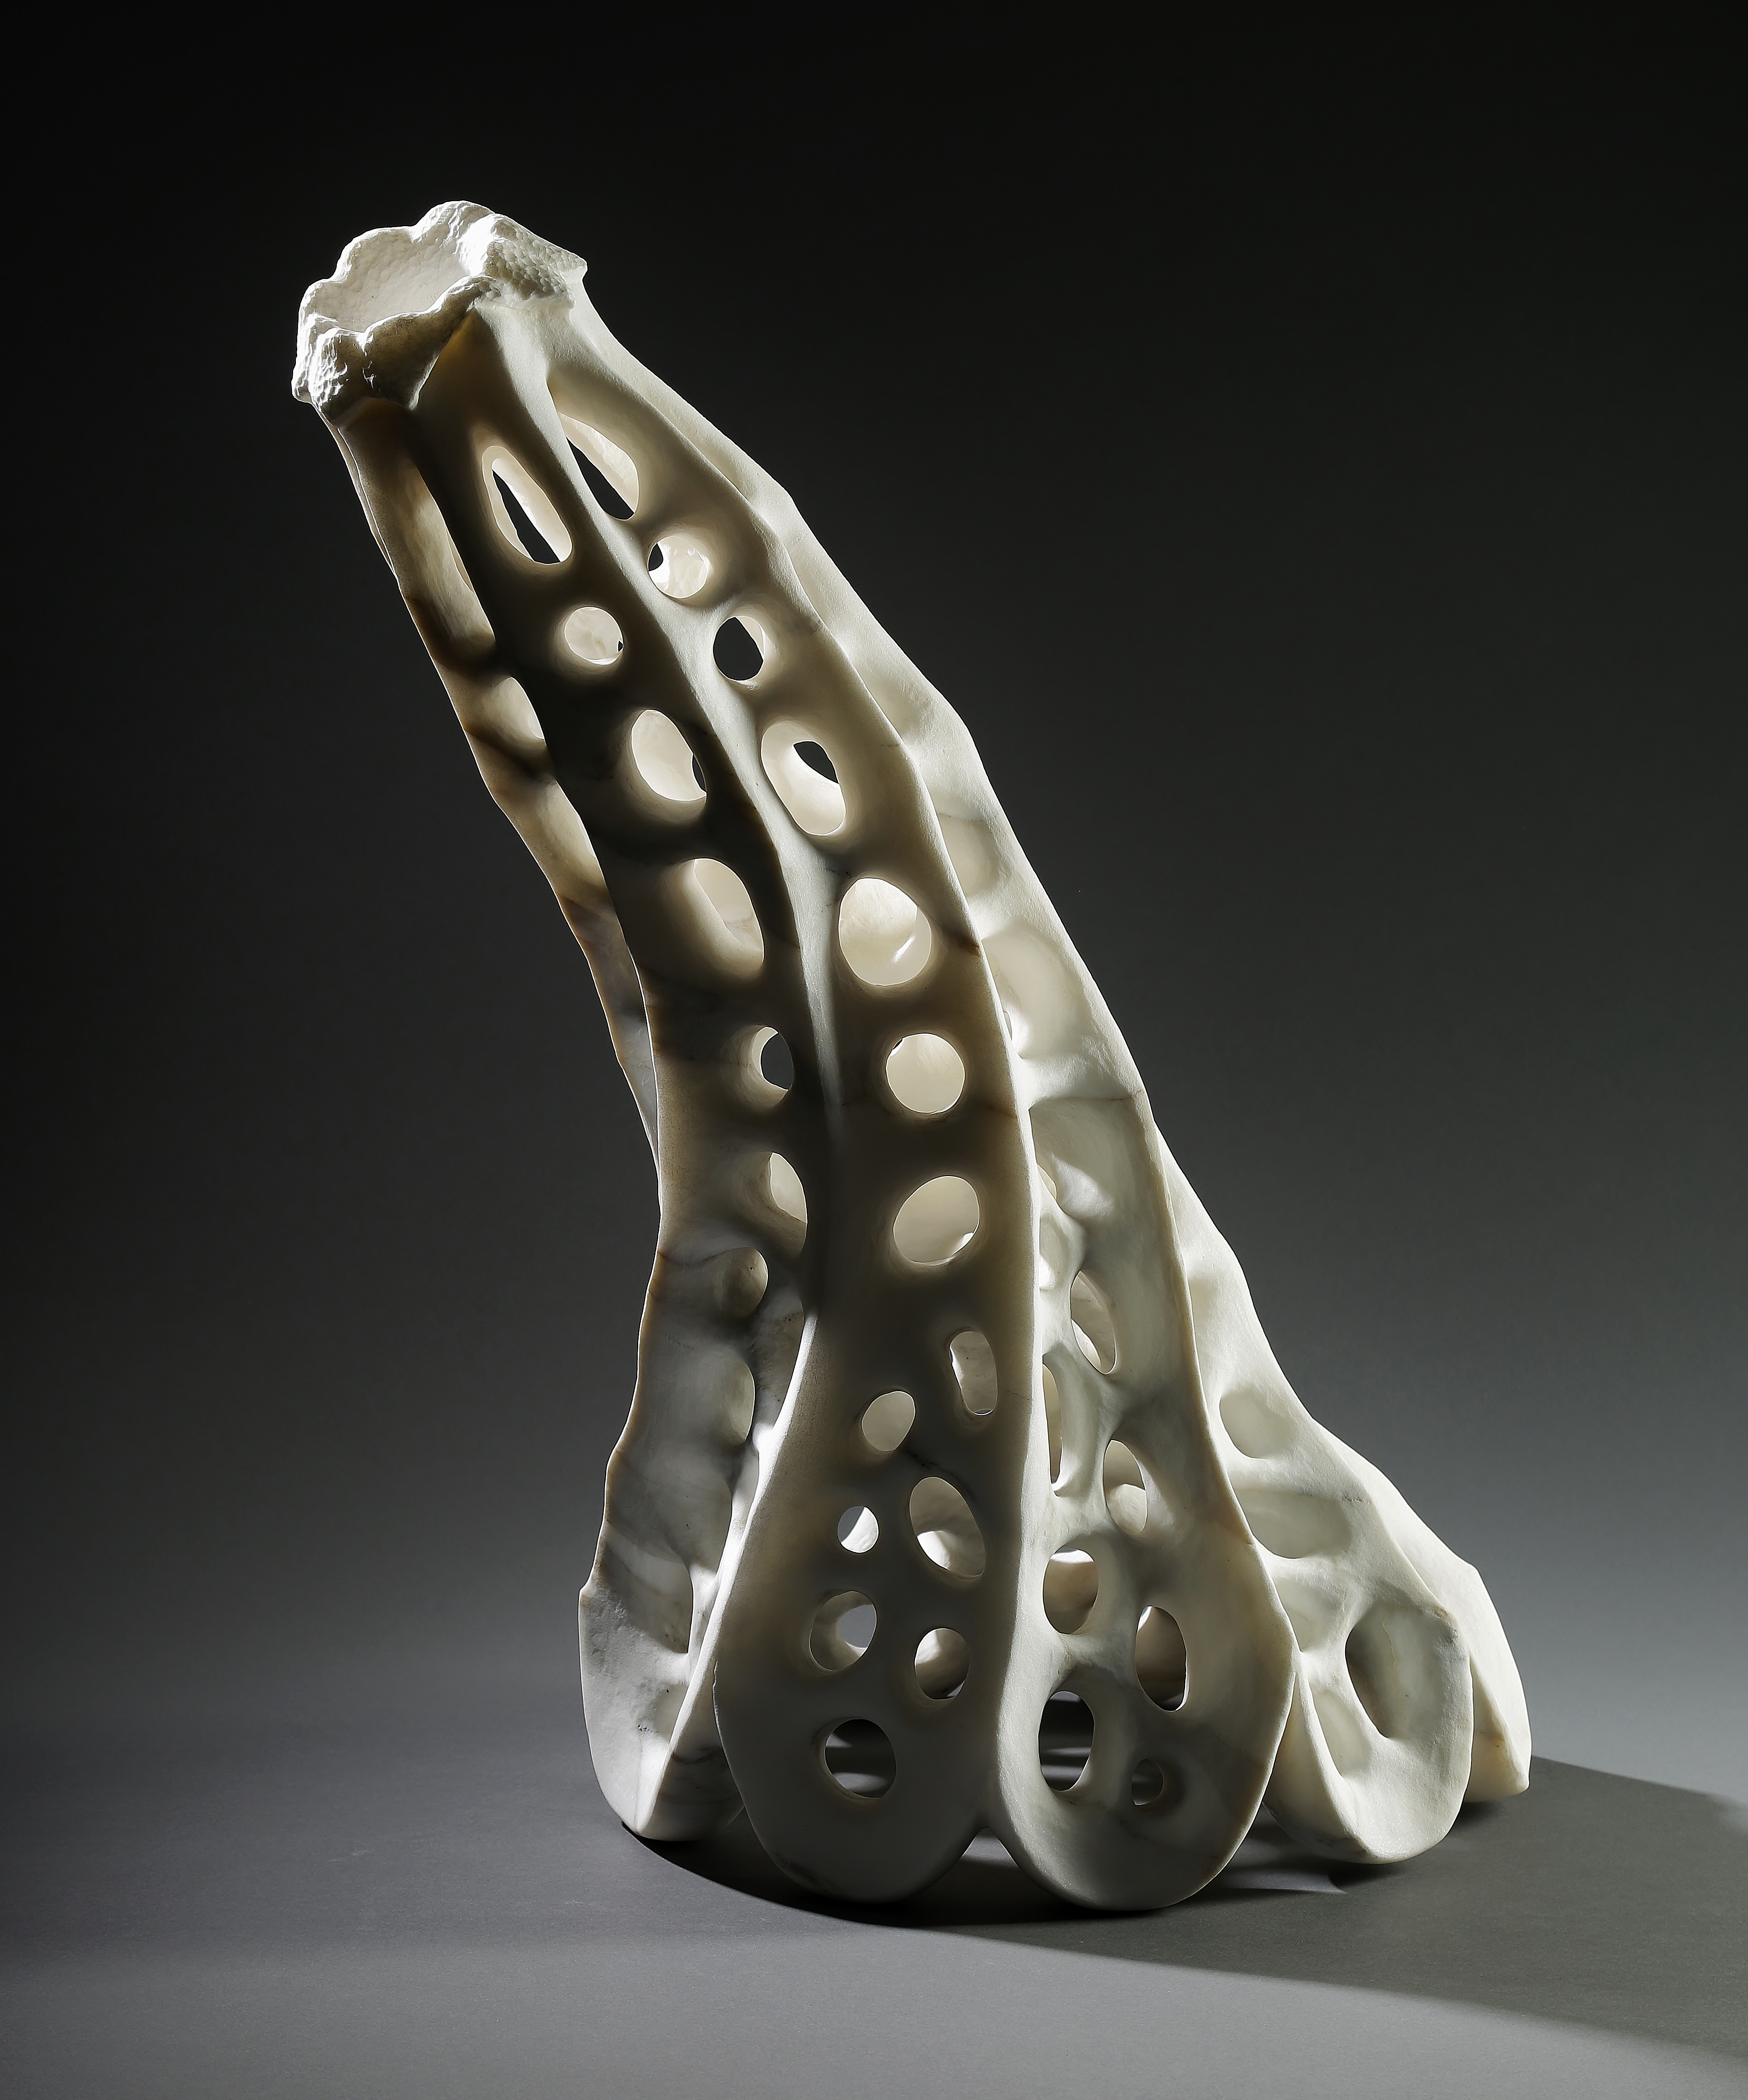 """Cleric"", 21 inches high, Carrara Gold marble, Lane Tompkins"